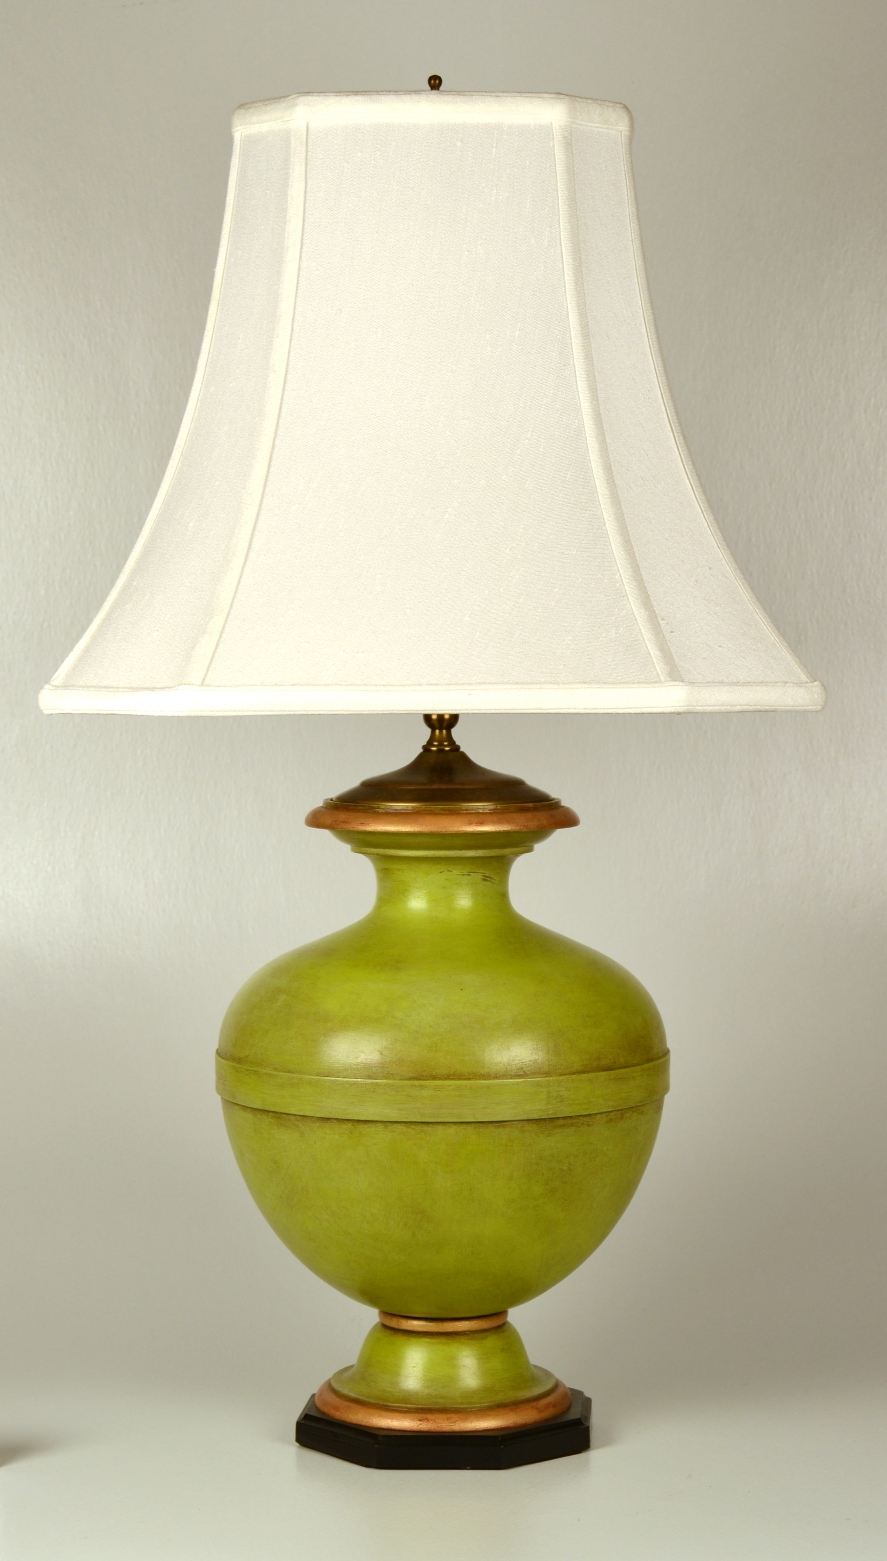 View 3: Turned and Painted Urn Shaped Lamp